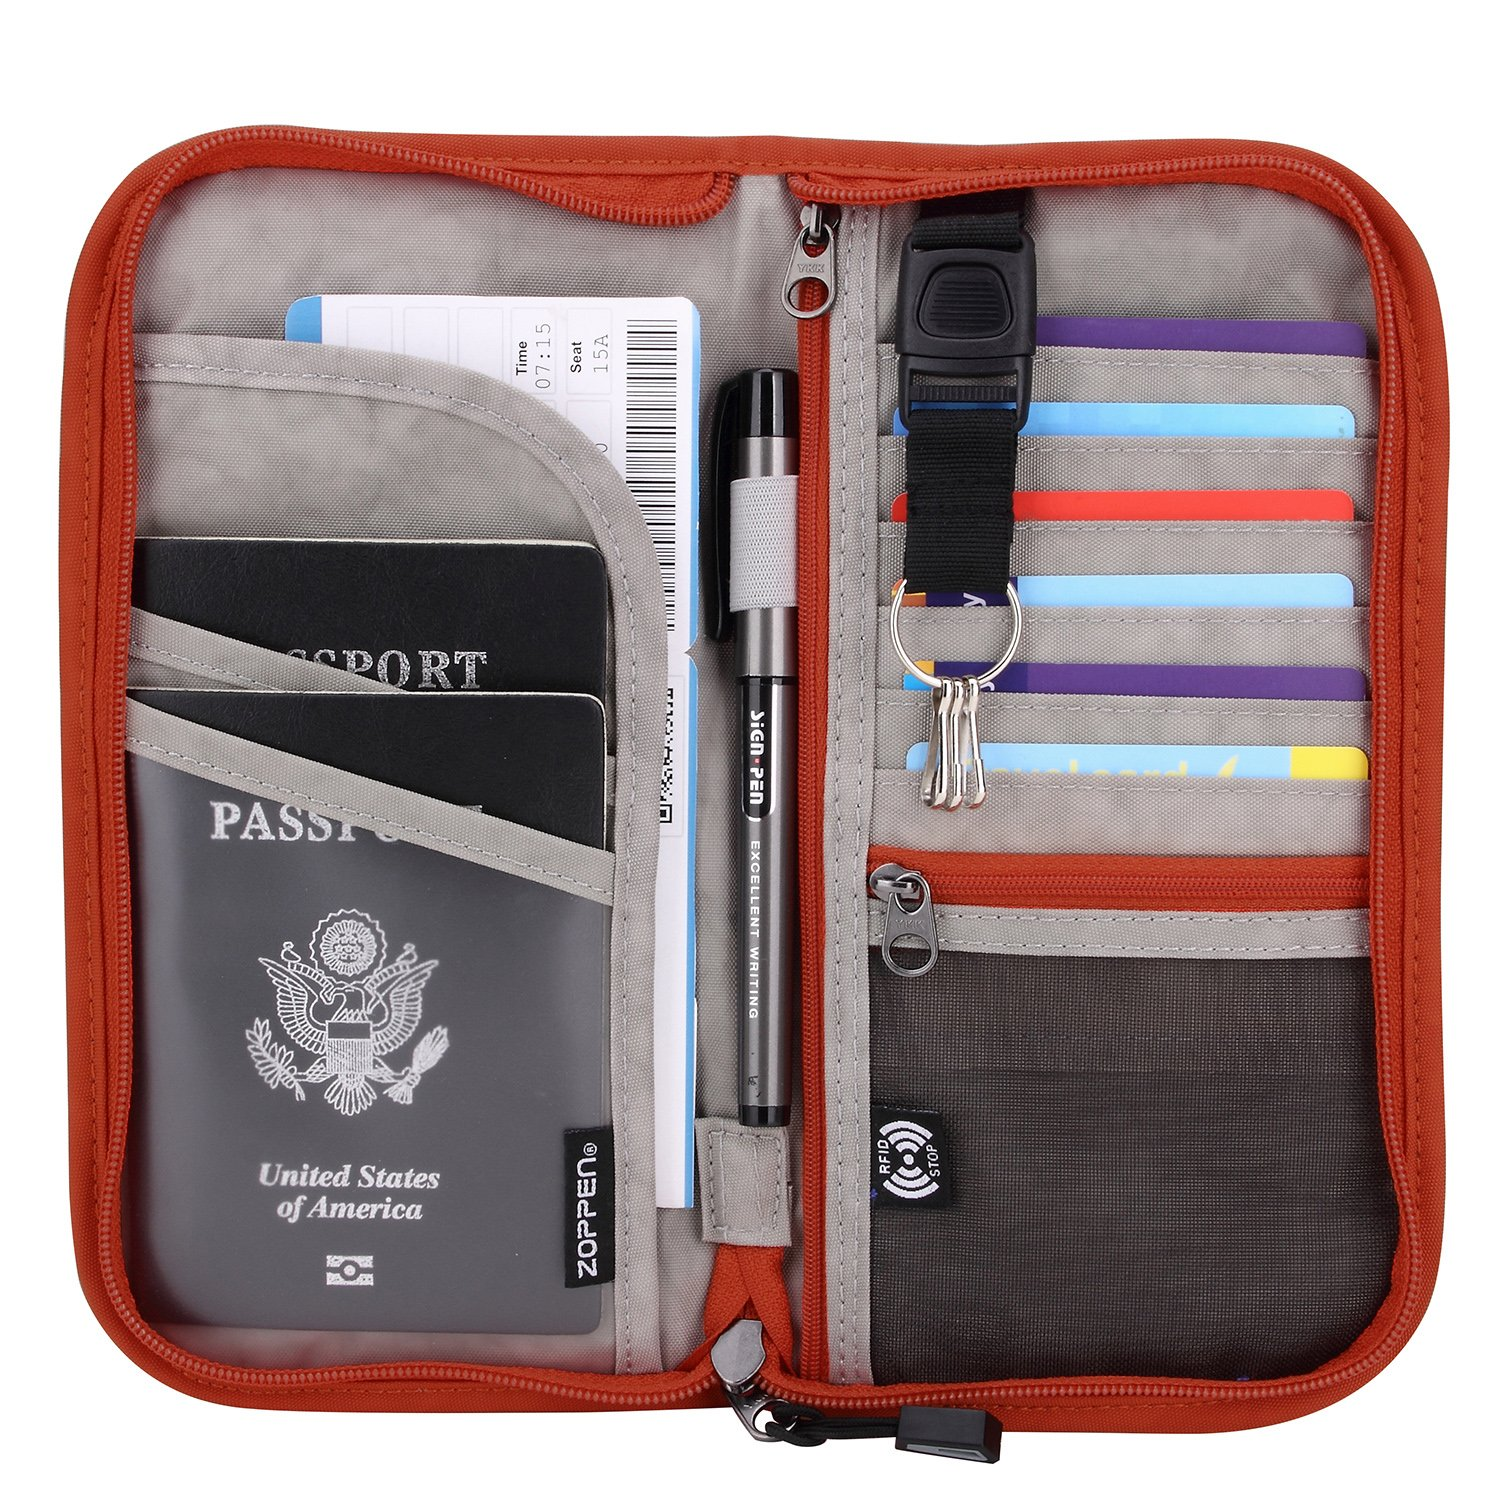 Zoppen RFID Travel Passport Wallet & Documents Organizer Zipper Case with Removable Wristlet Strap, Orange